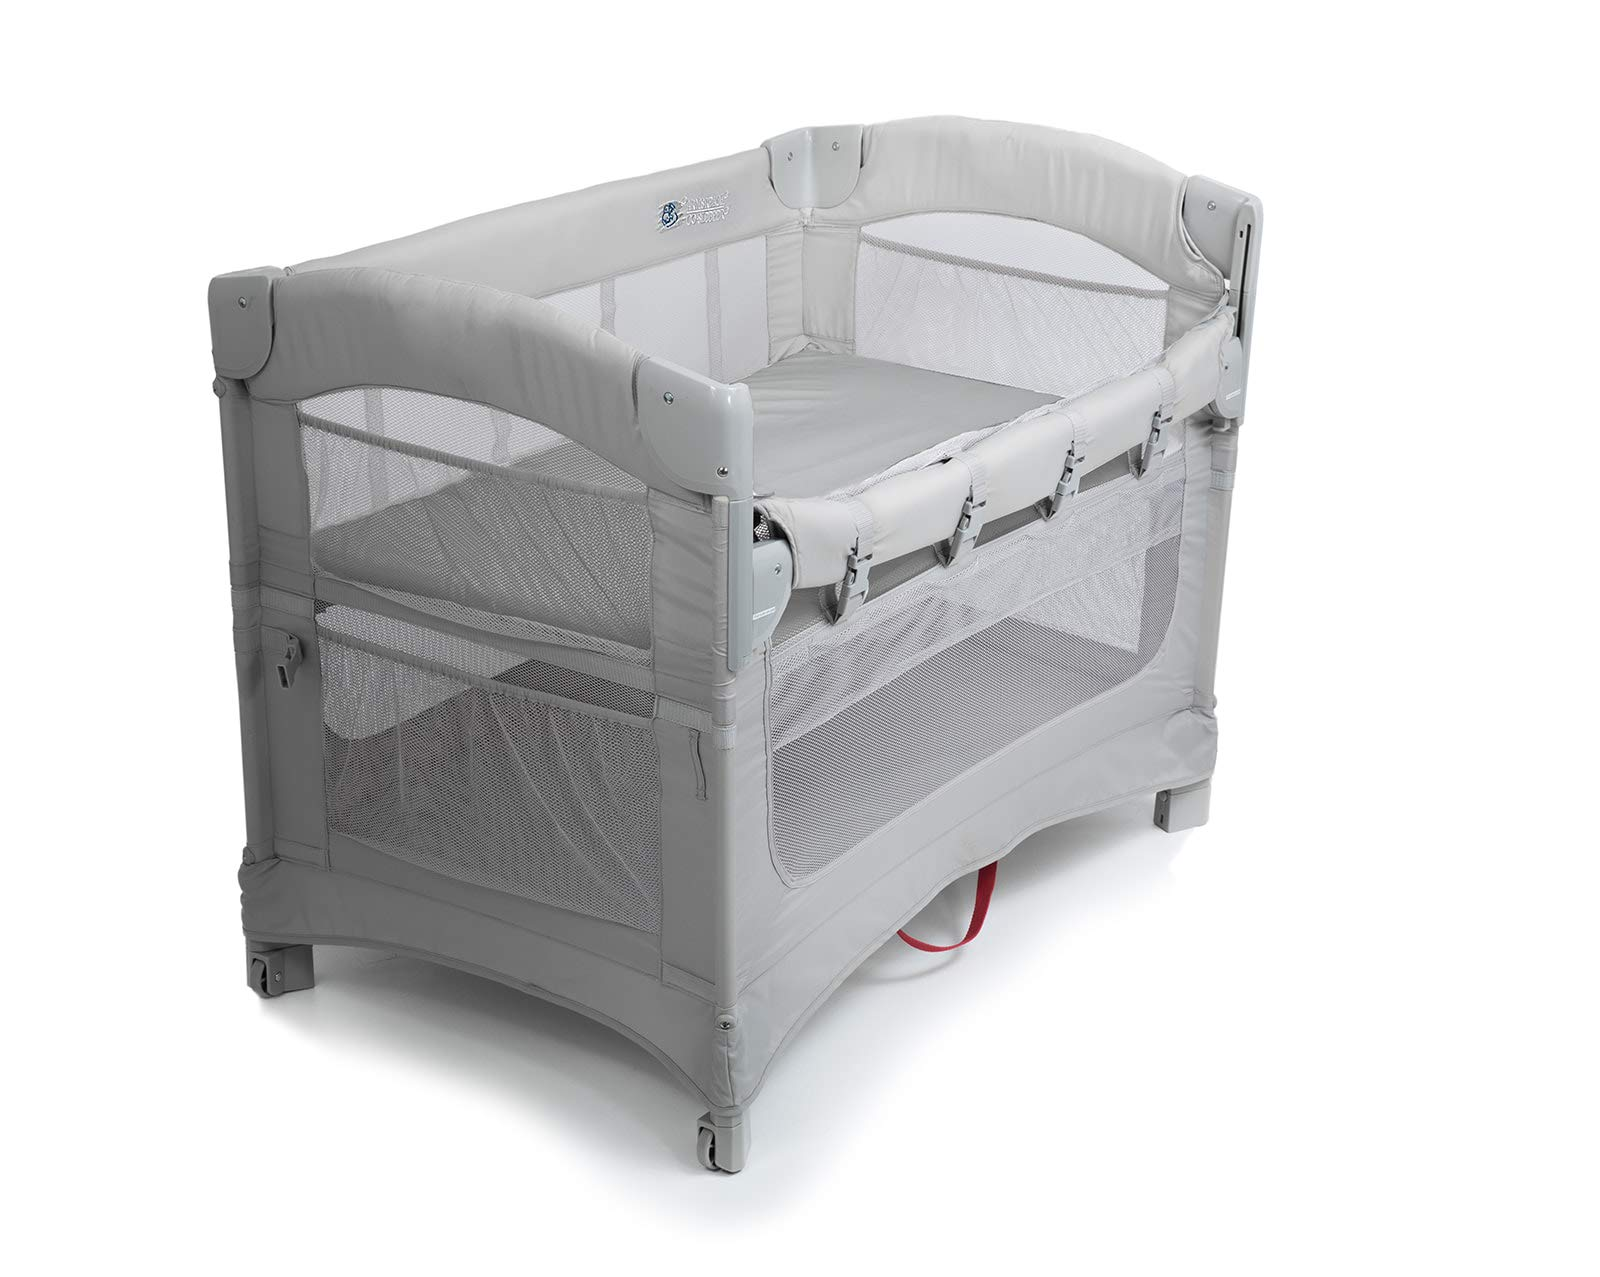 Arm's Reach Concepts Ideal 3 in 1 Co-Sleeper Bassinet - Grey by Arm's Reach